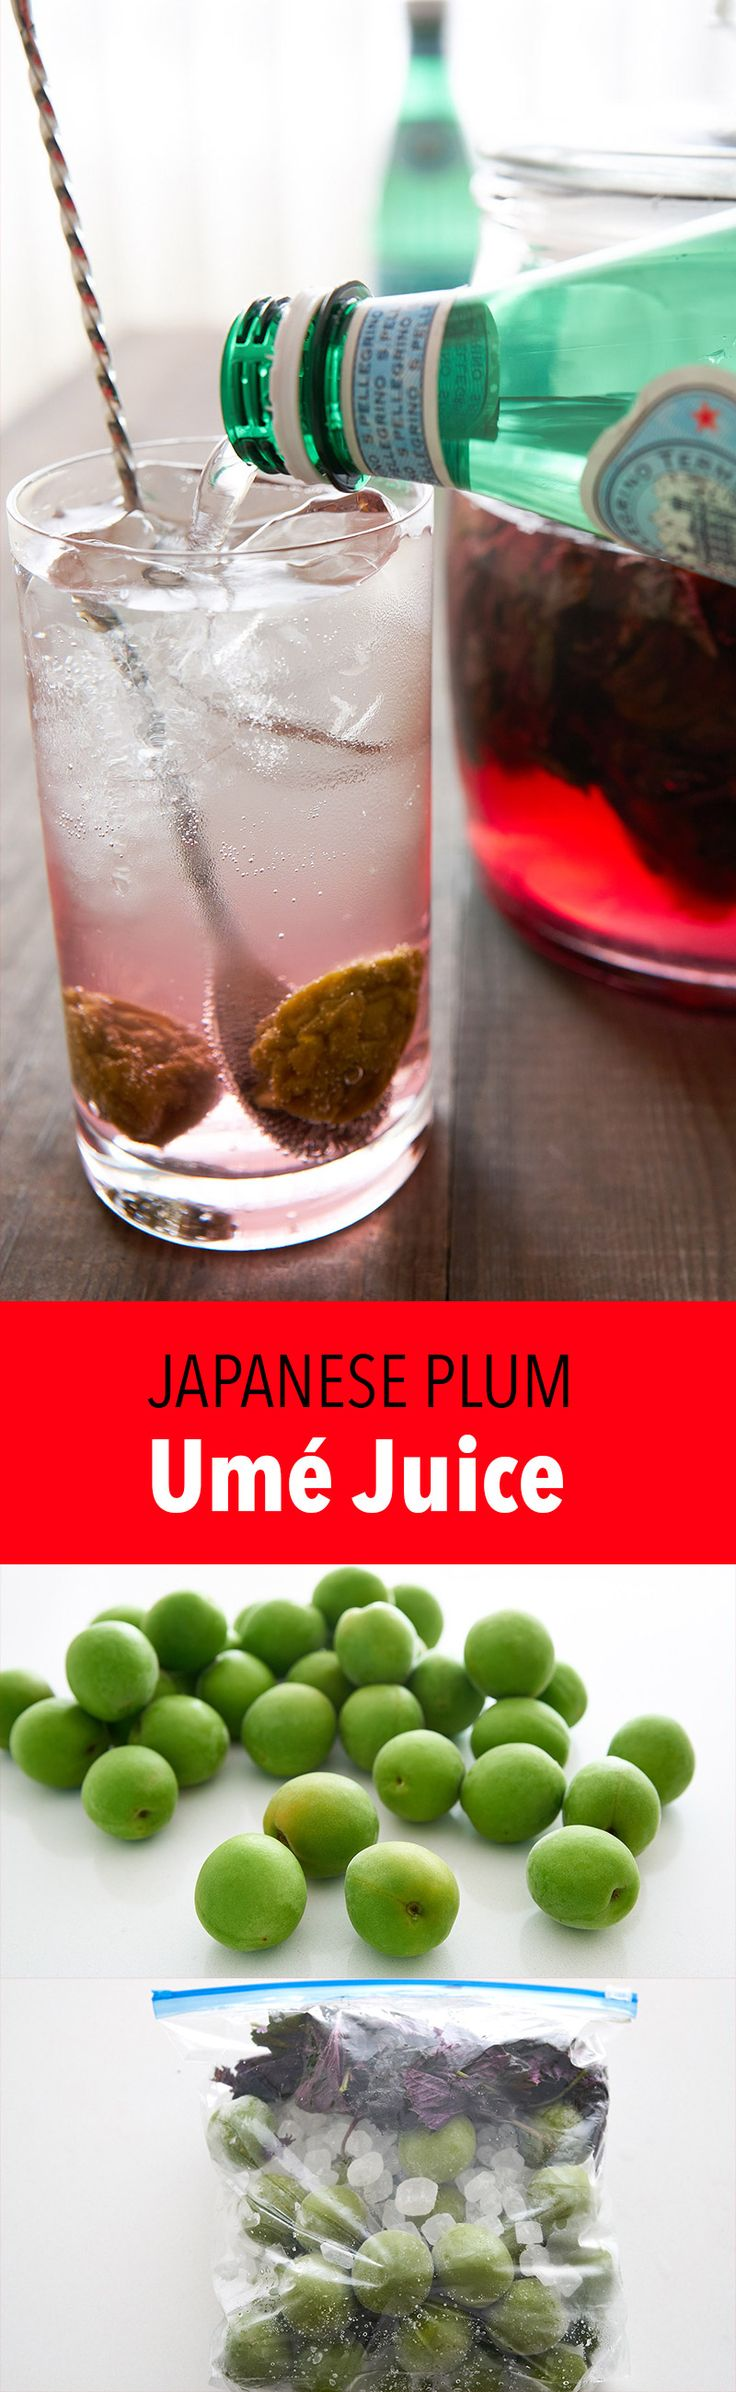 Learn how to make Umé juice (梅ジュース), a popular summertime beverage in Japan made from a syrup extracted from Umé fruit (Japanese Plum)